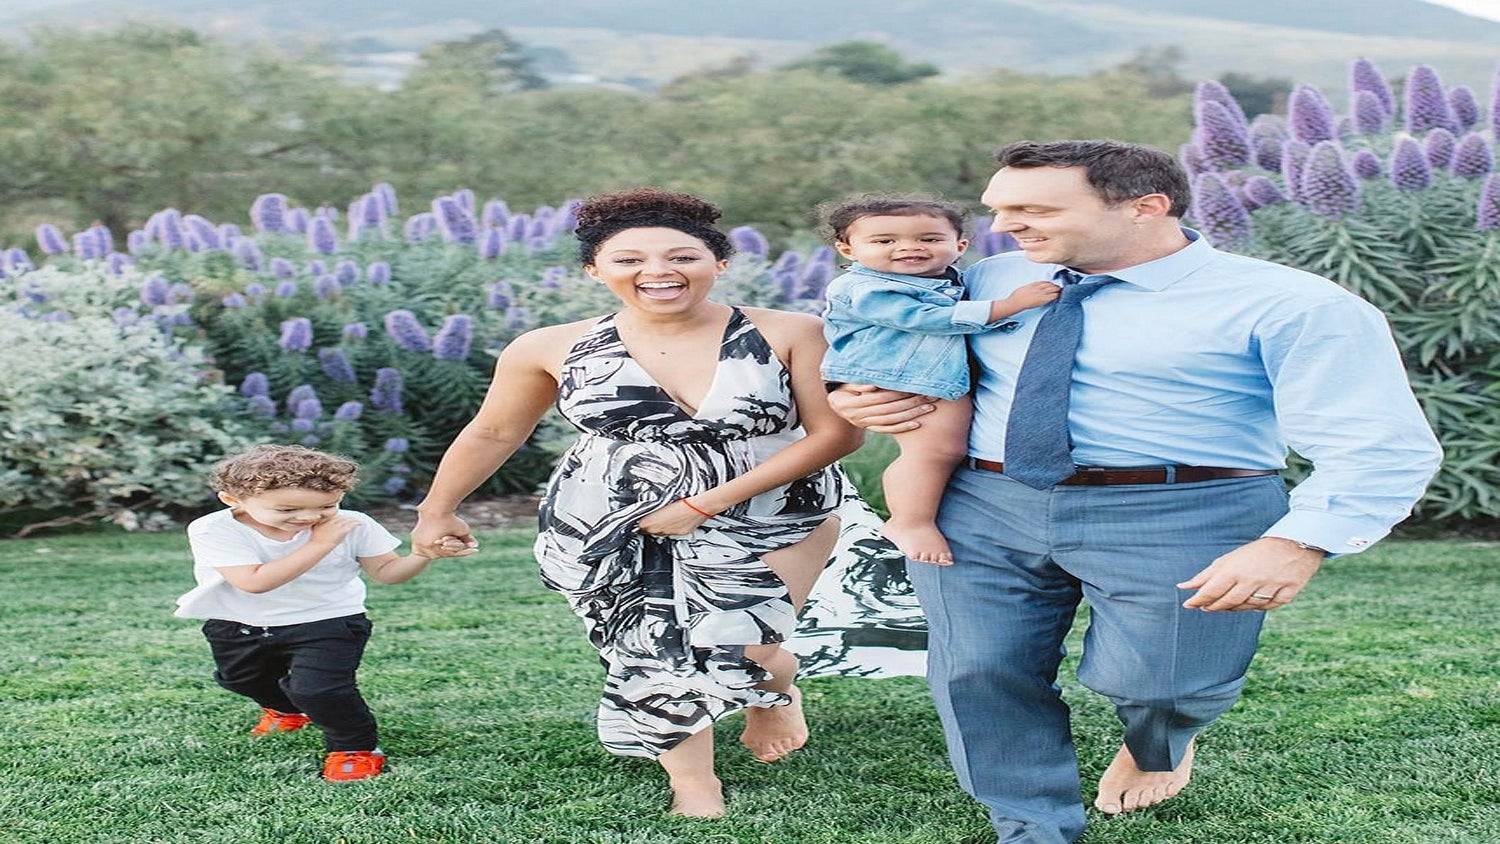 Tamera Mowry-Housley Opens Up About Expanding Her Family Through Adoption